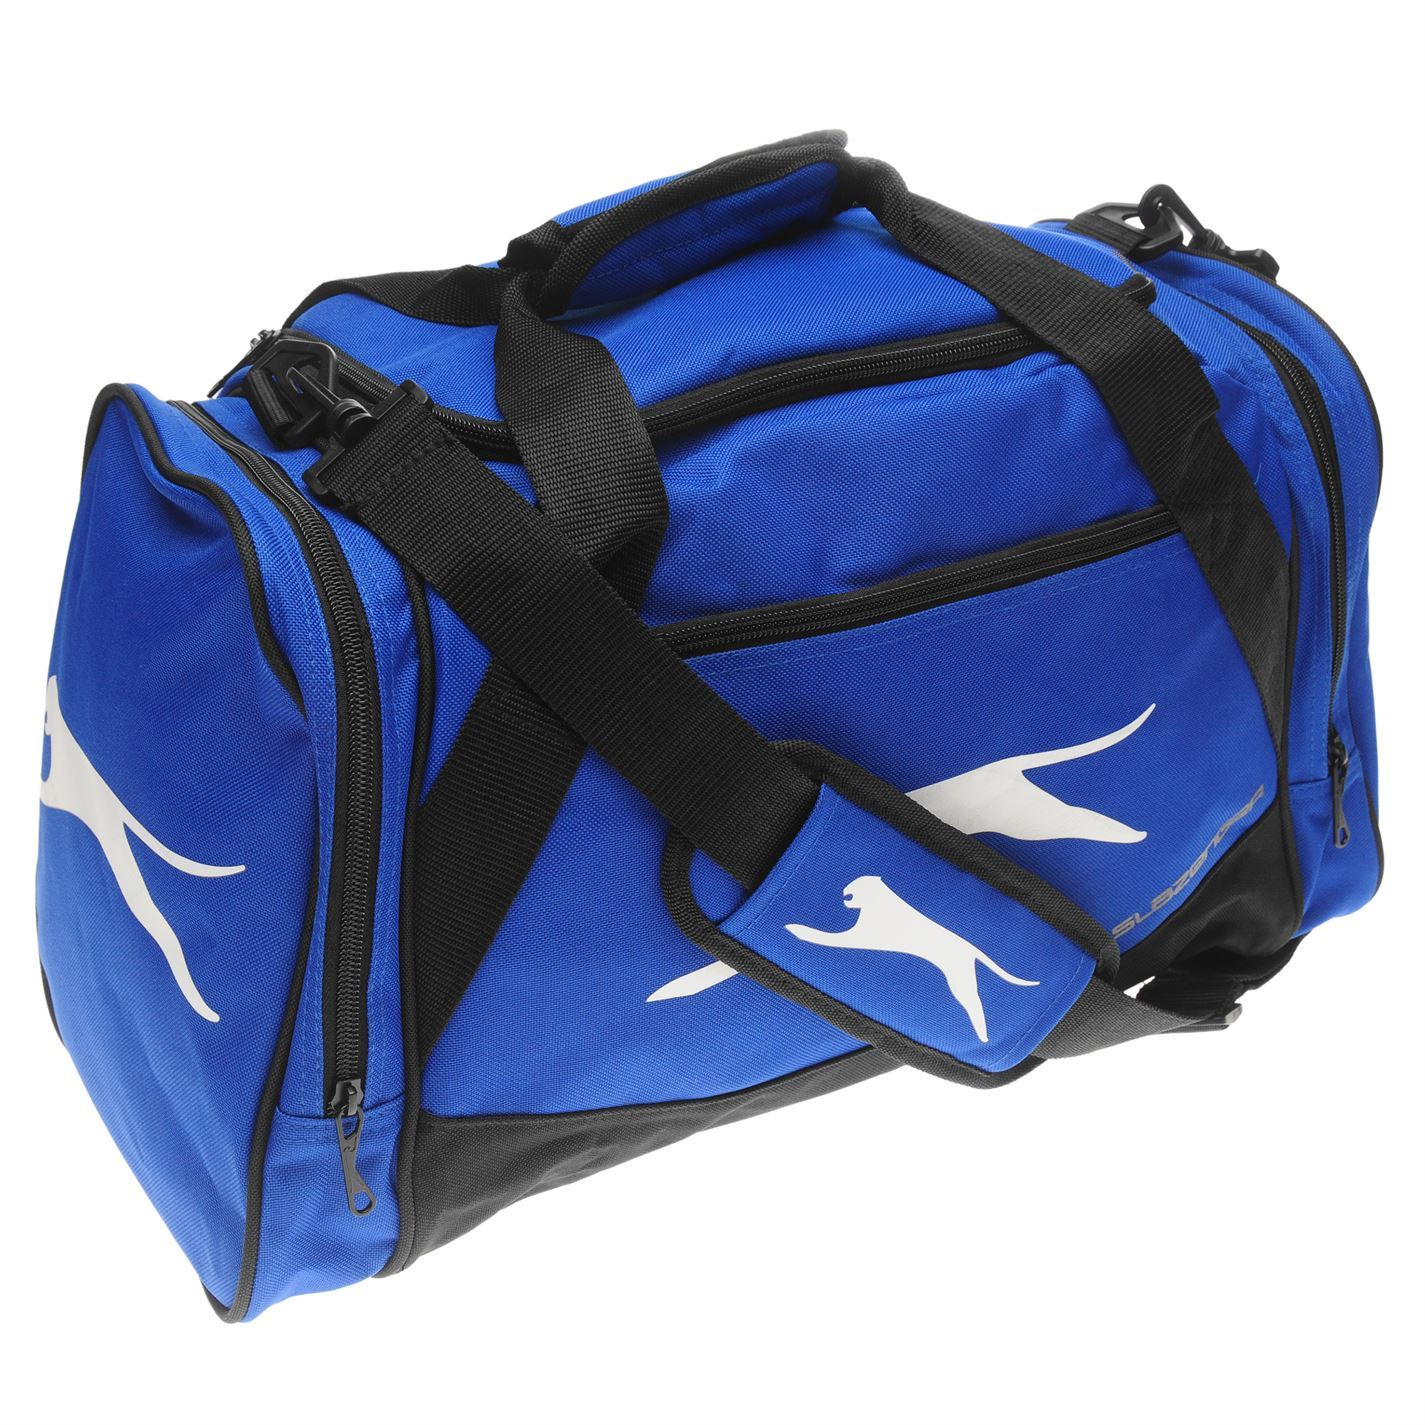 4dcffa6cca Details about Slazenger Small Sports Holdall Royal Gym Kit Bag Carryall